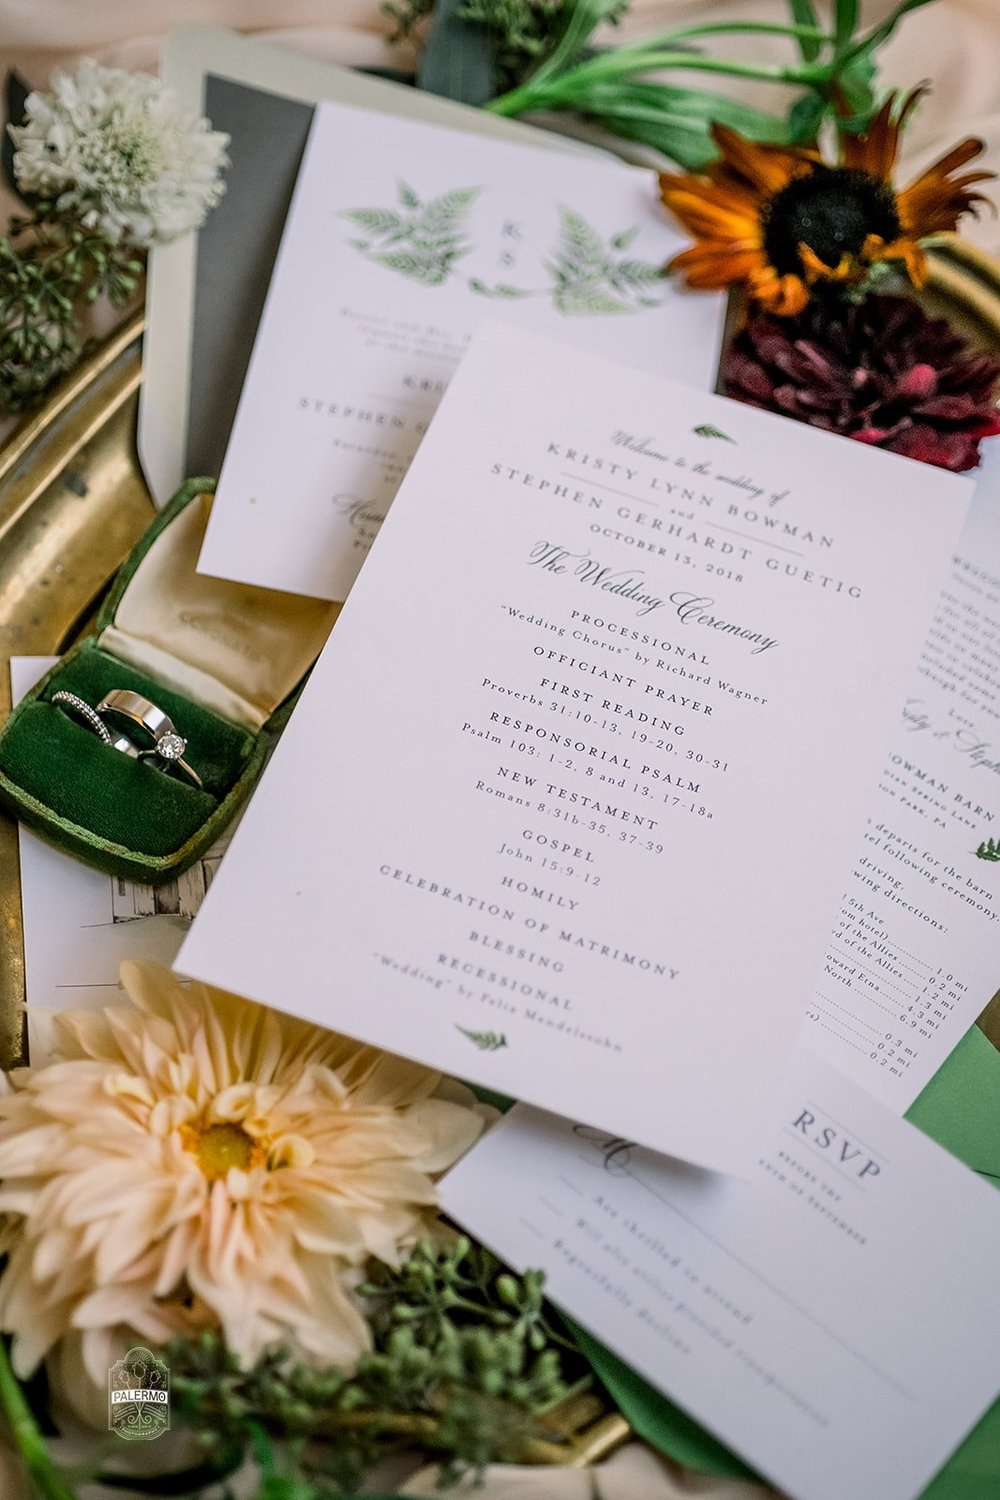 Wedding invitations and stationery for fall barn wedding in Pittsburgh, PA planned by Exhale Events. Find more wedding inspiration at exhale-events.com!